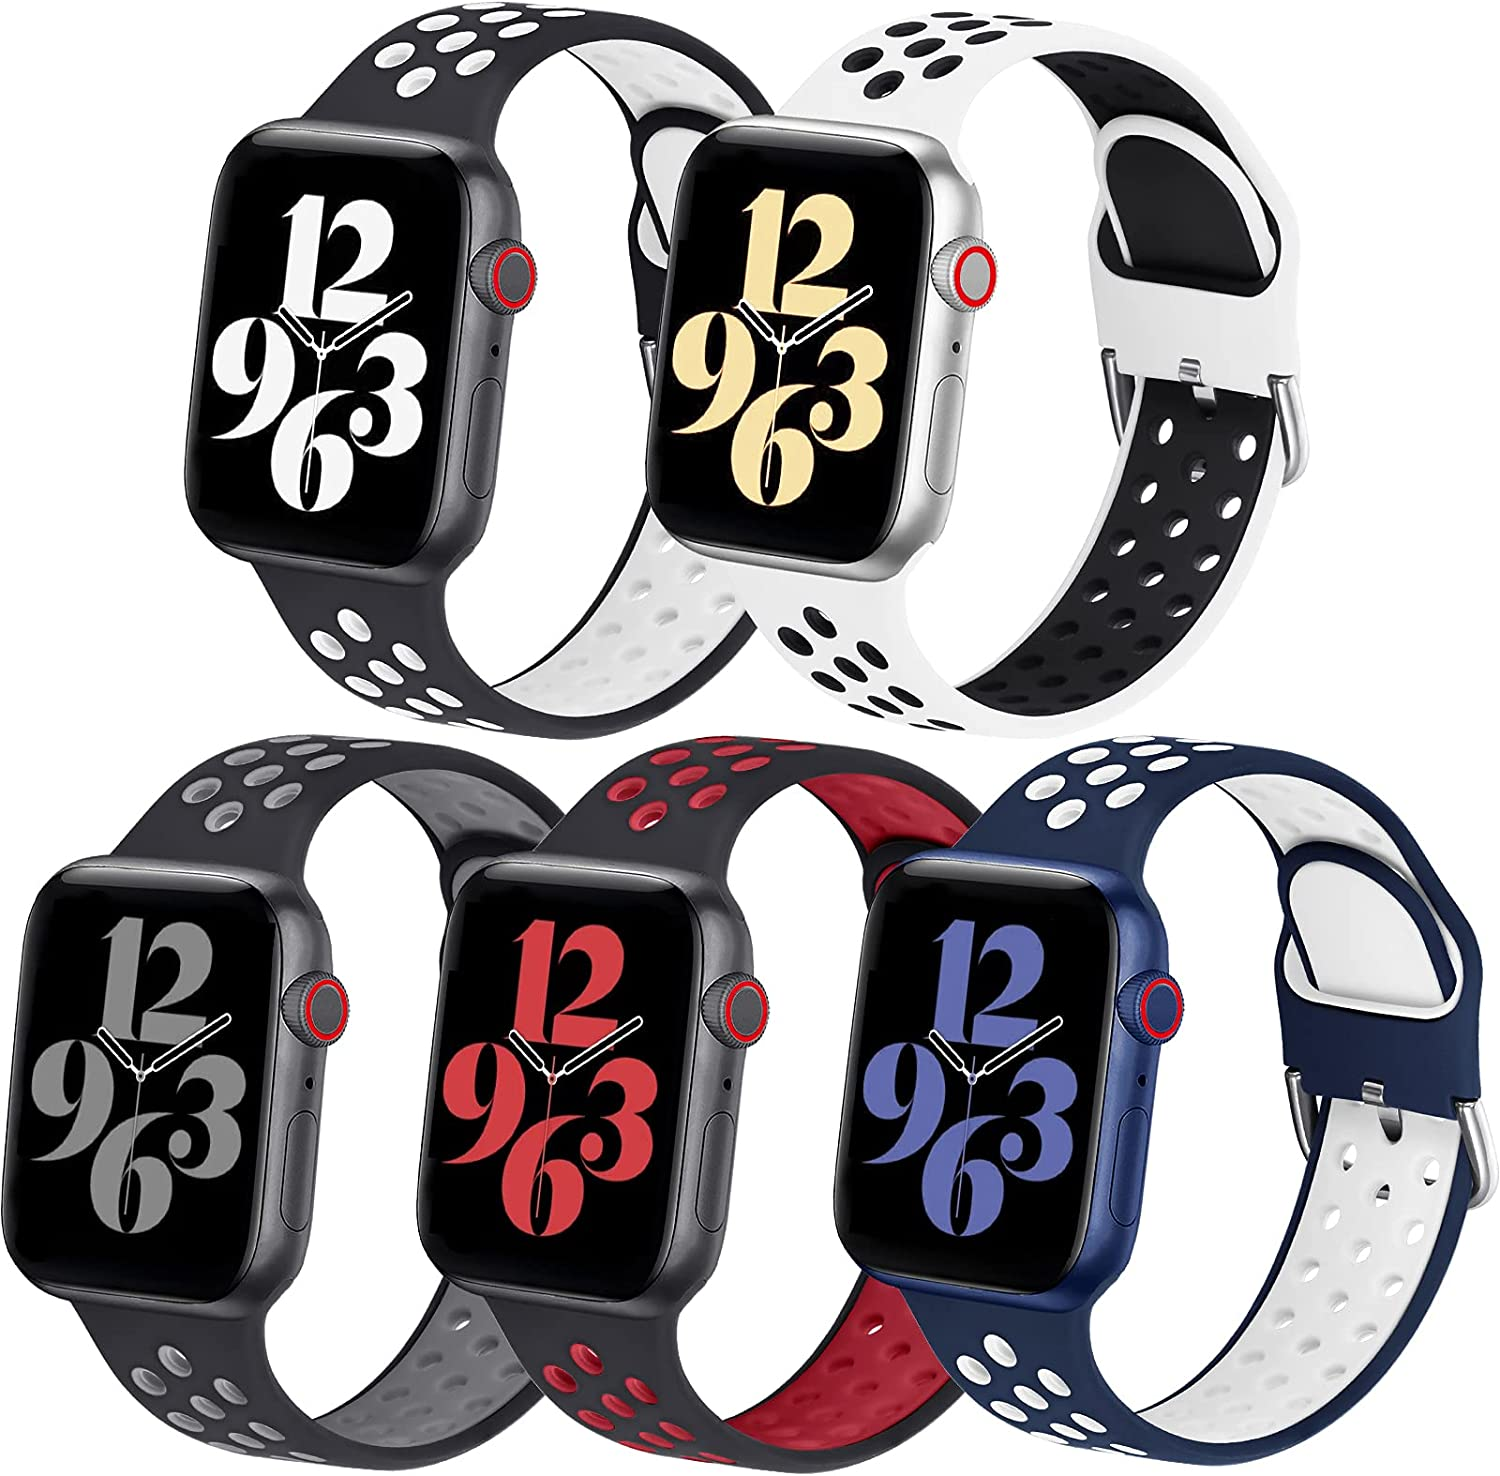 5 Pack Silicone Band Compatible with Apple Watch Band 42mm 44mm 45mm 38mm 40mm 41mm for Women Men,Soft Breathable Silicone Sport Strap with Air Hole for iWatch SE Series 7/6/5/4/3/2/1